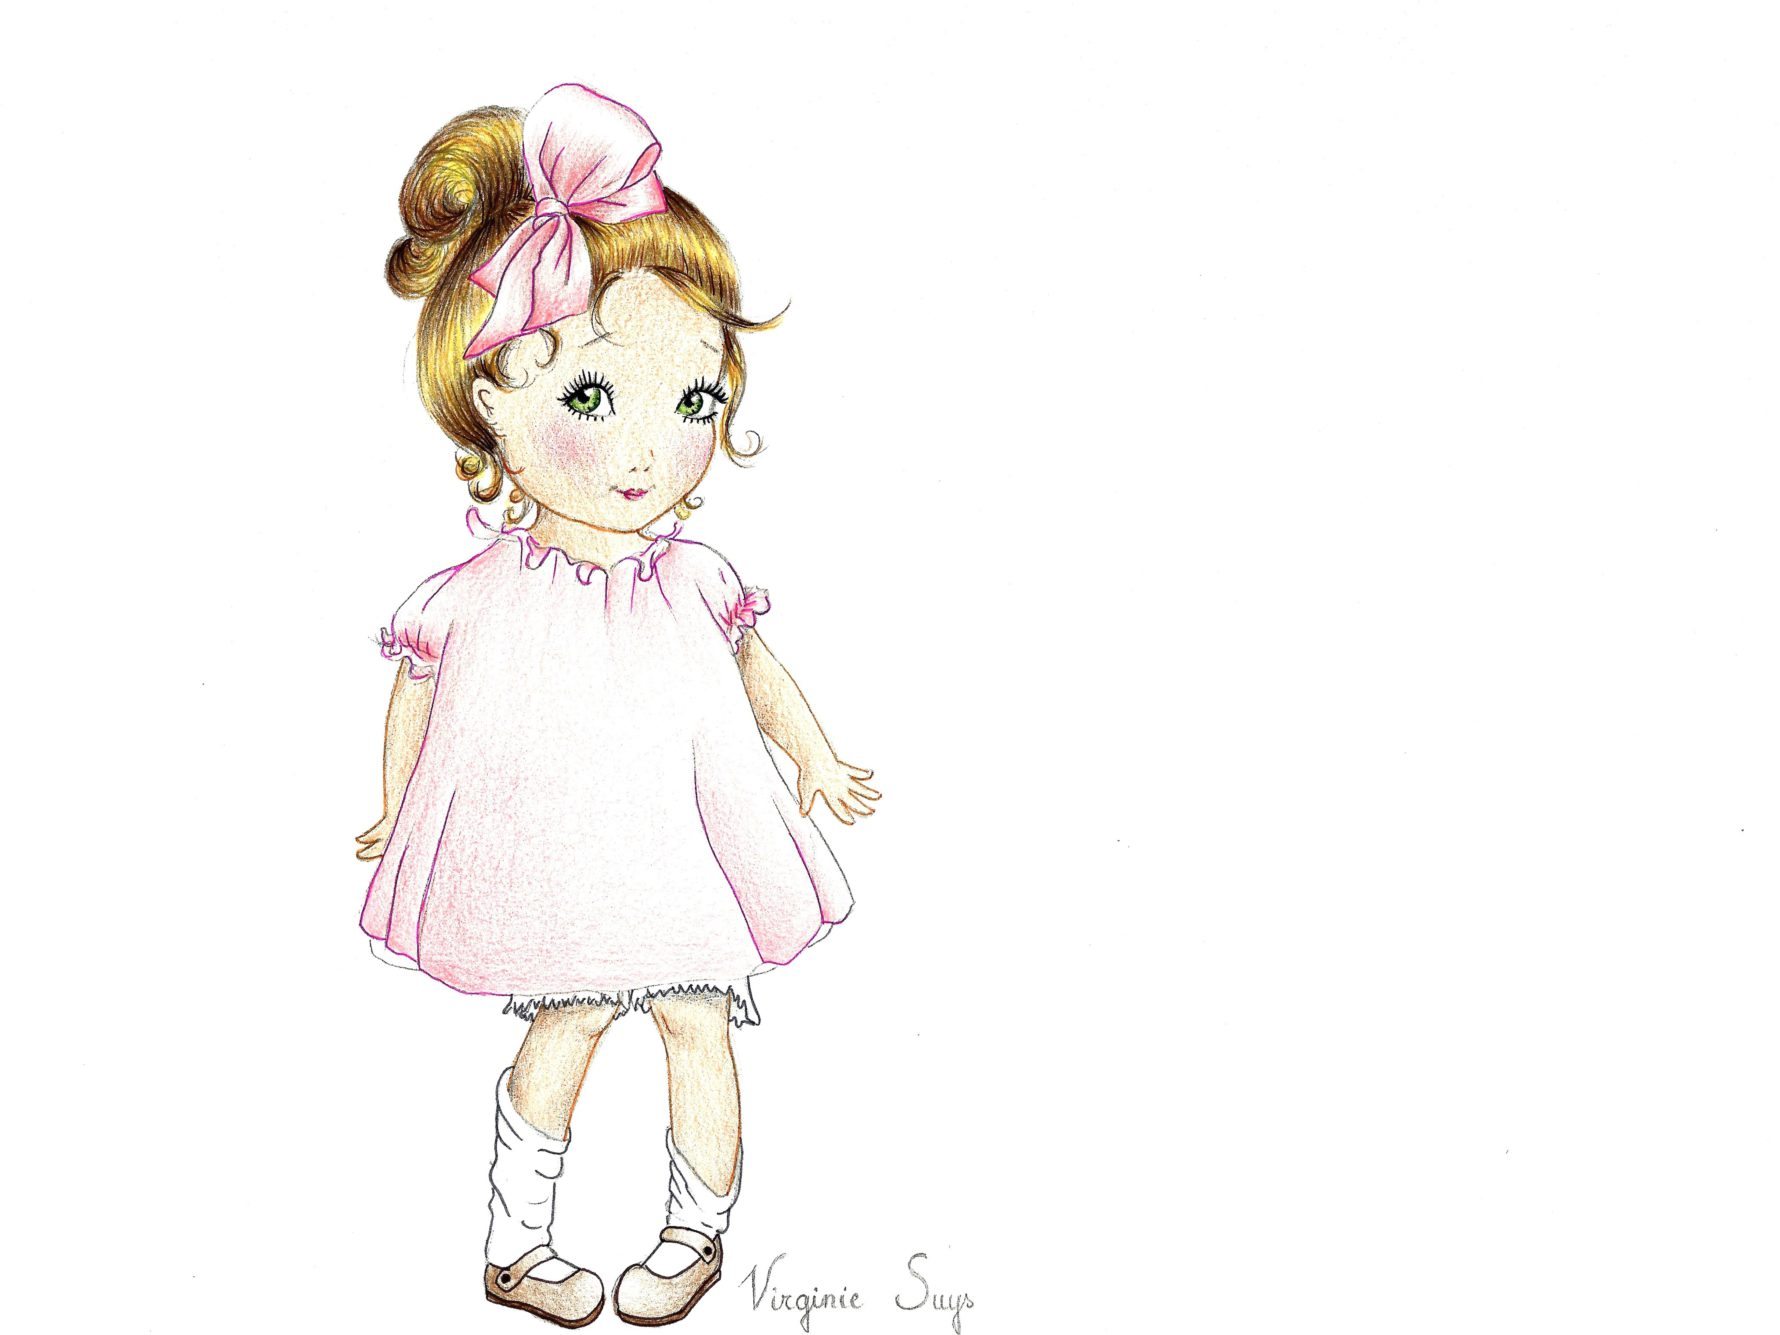 Virginie Suys Girl with bow in pink illustration